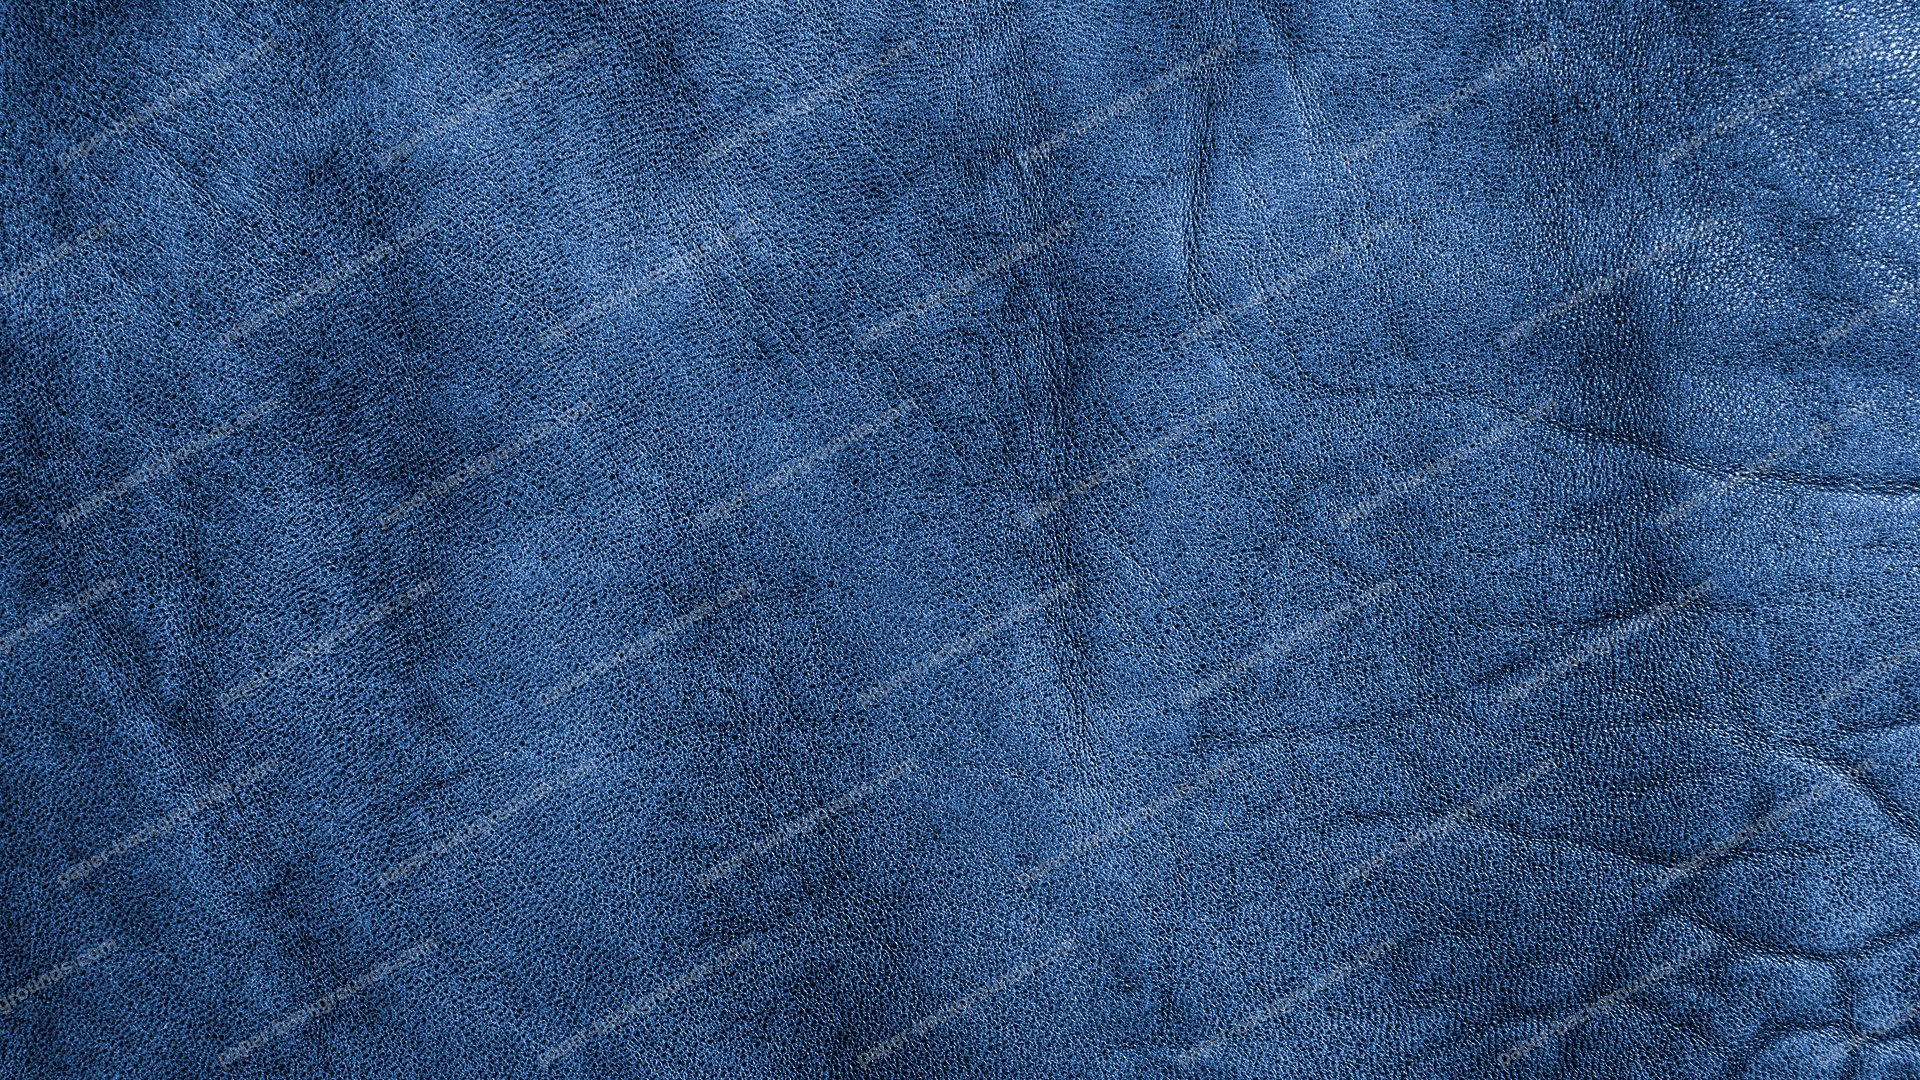 blue-vintage-leather-texture-background-hd